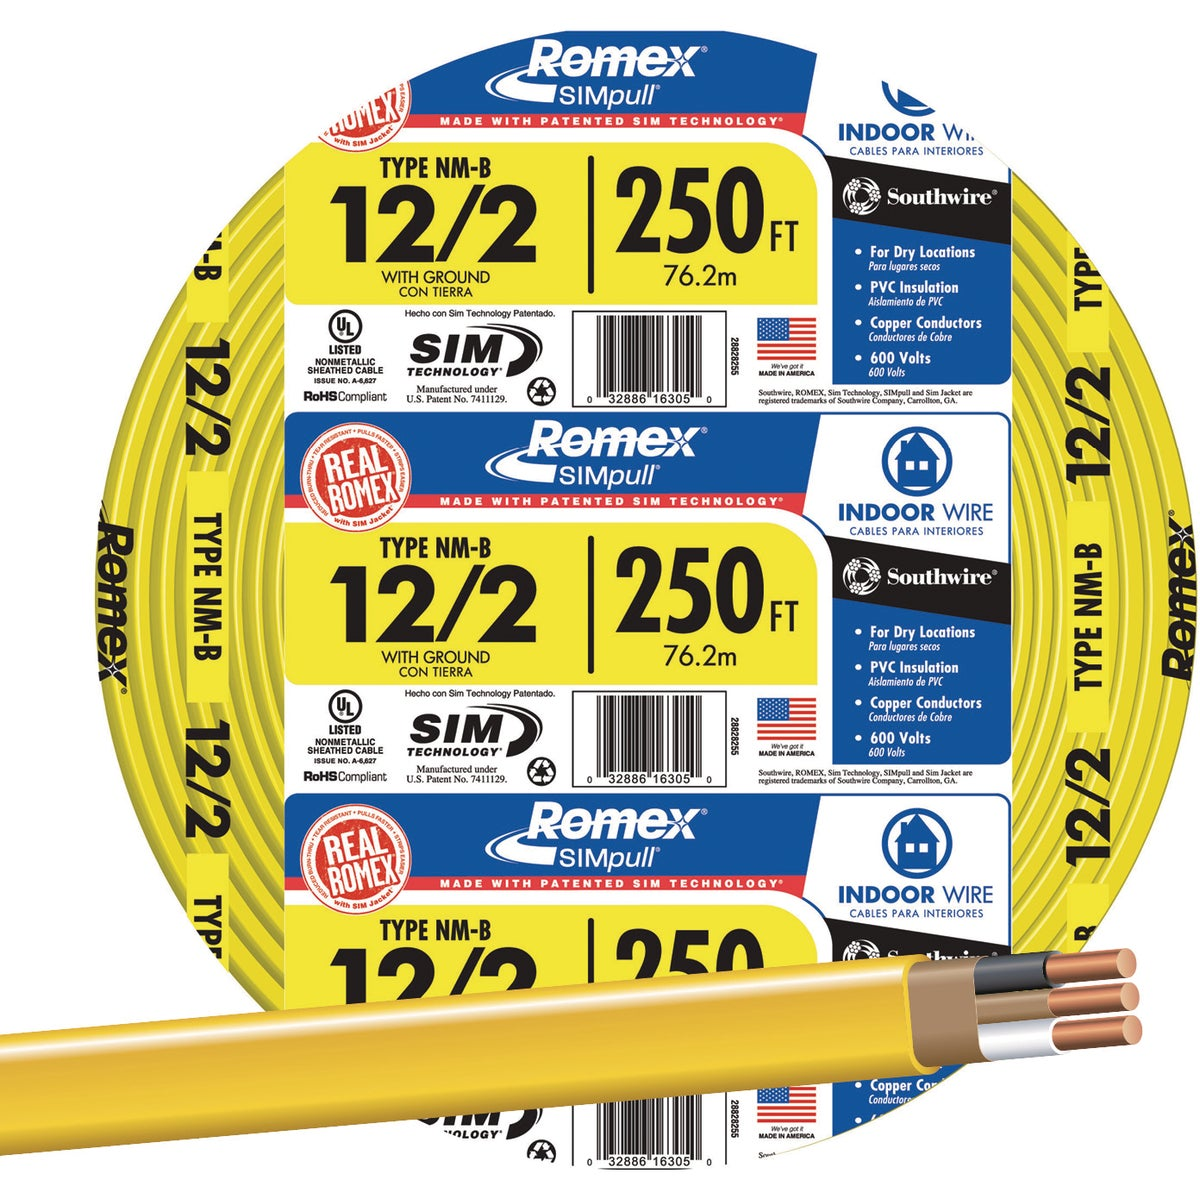 Southwire 250' 12-2 NMW/G WIRE 28828255